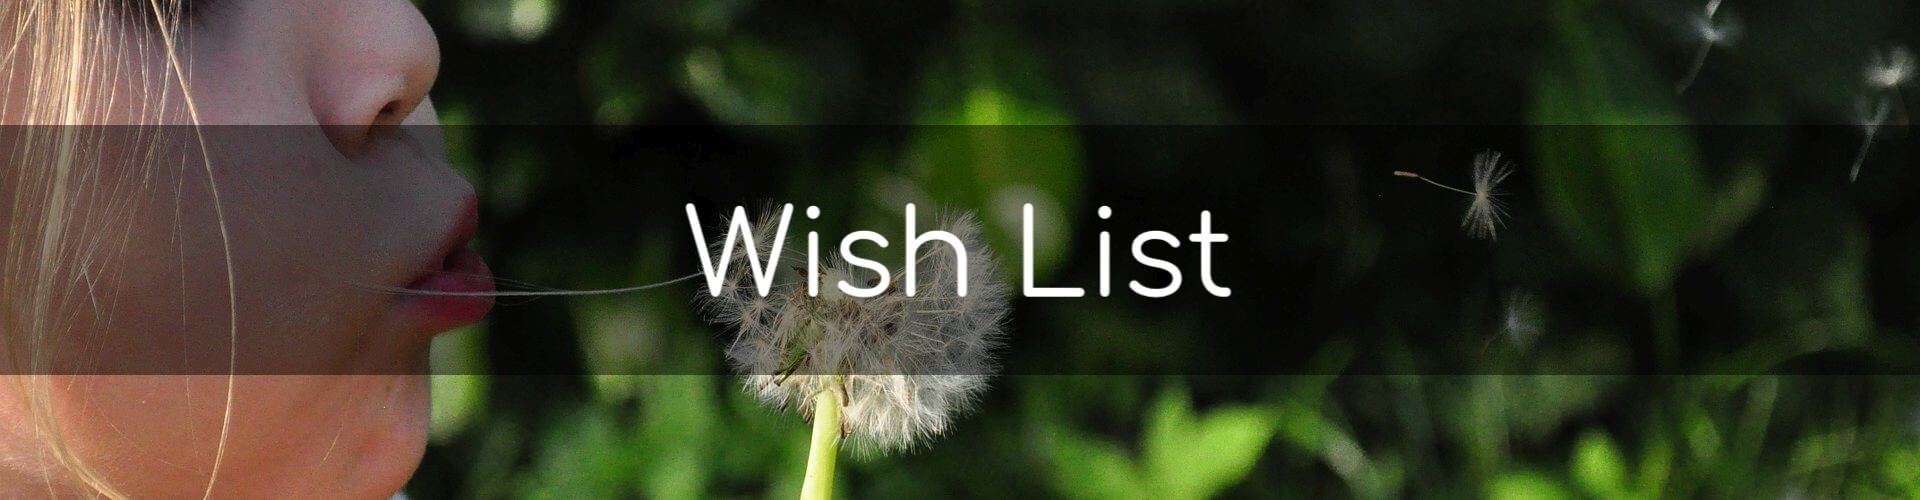 Wish List - Girl blowing a dandelion.